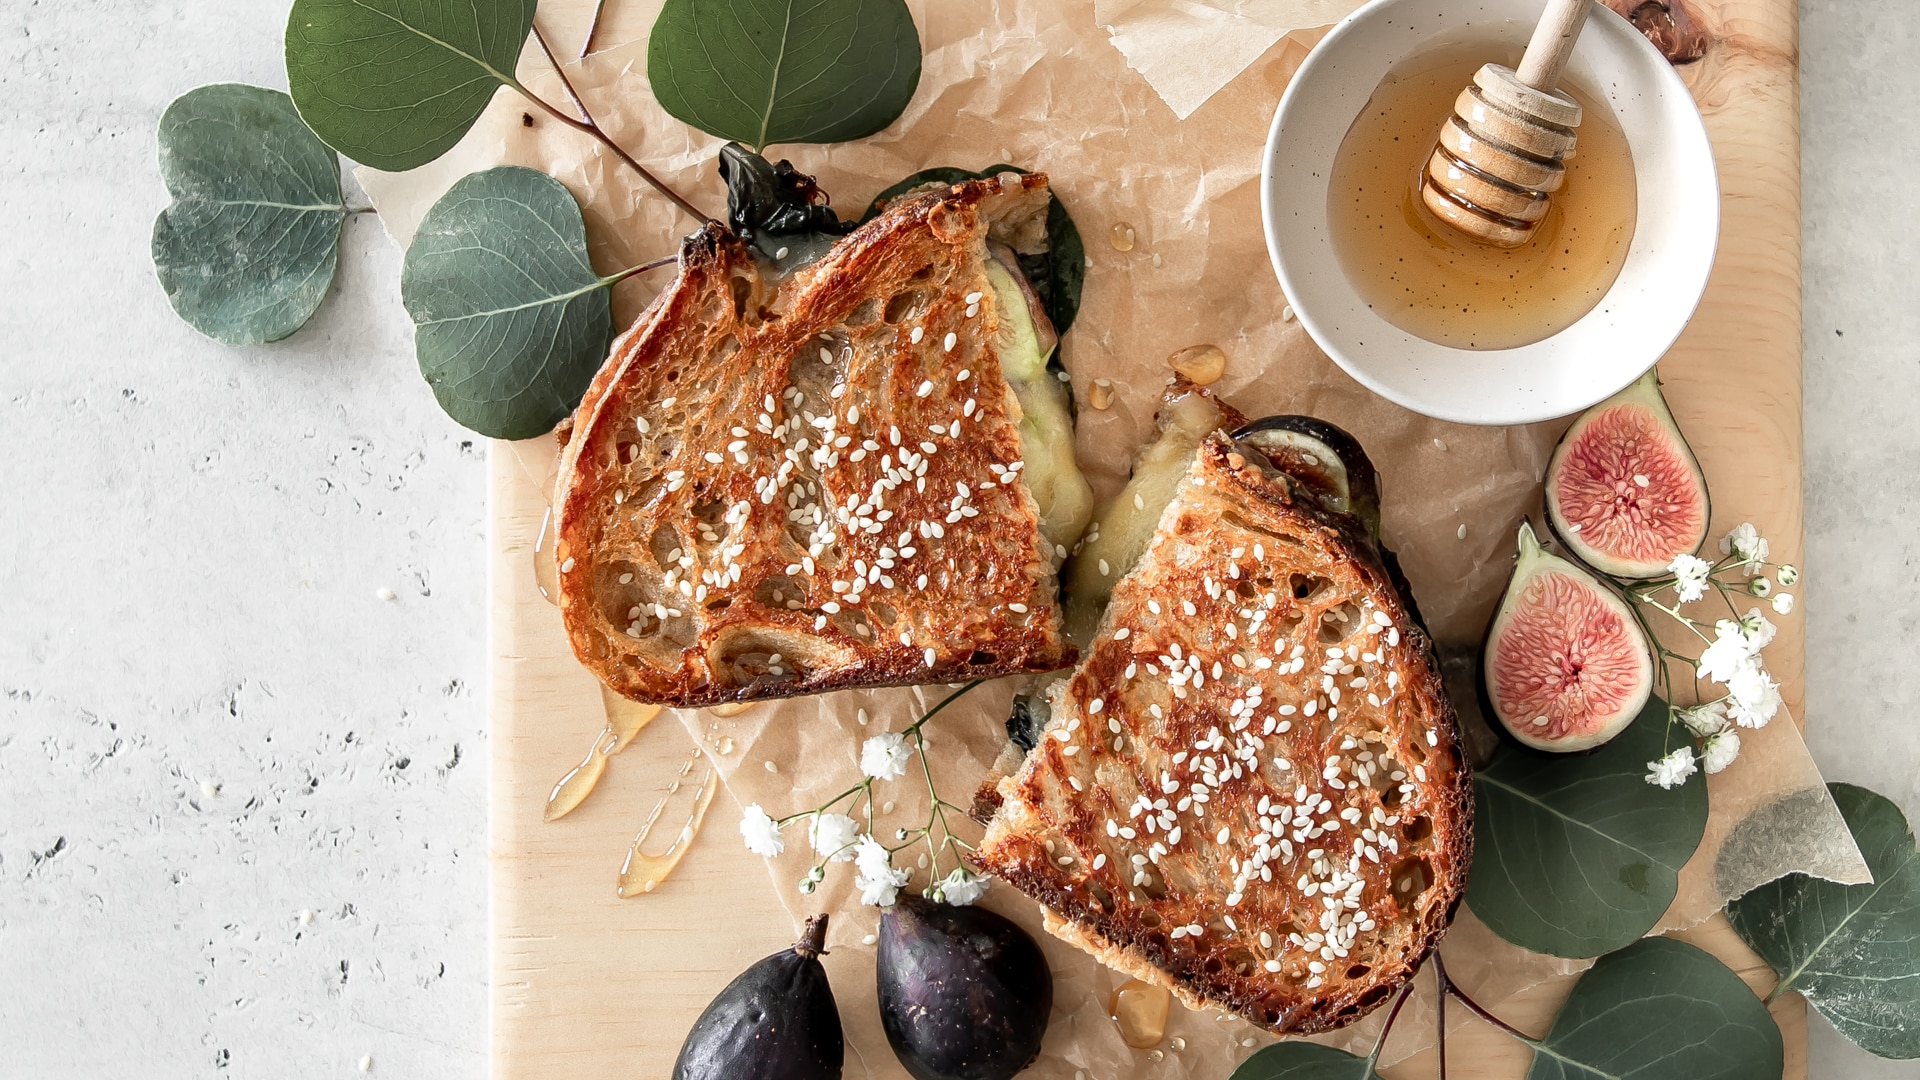 Gourmet grilled cheese sandwich with figs and honey